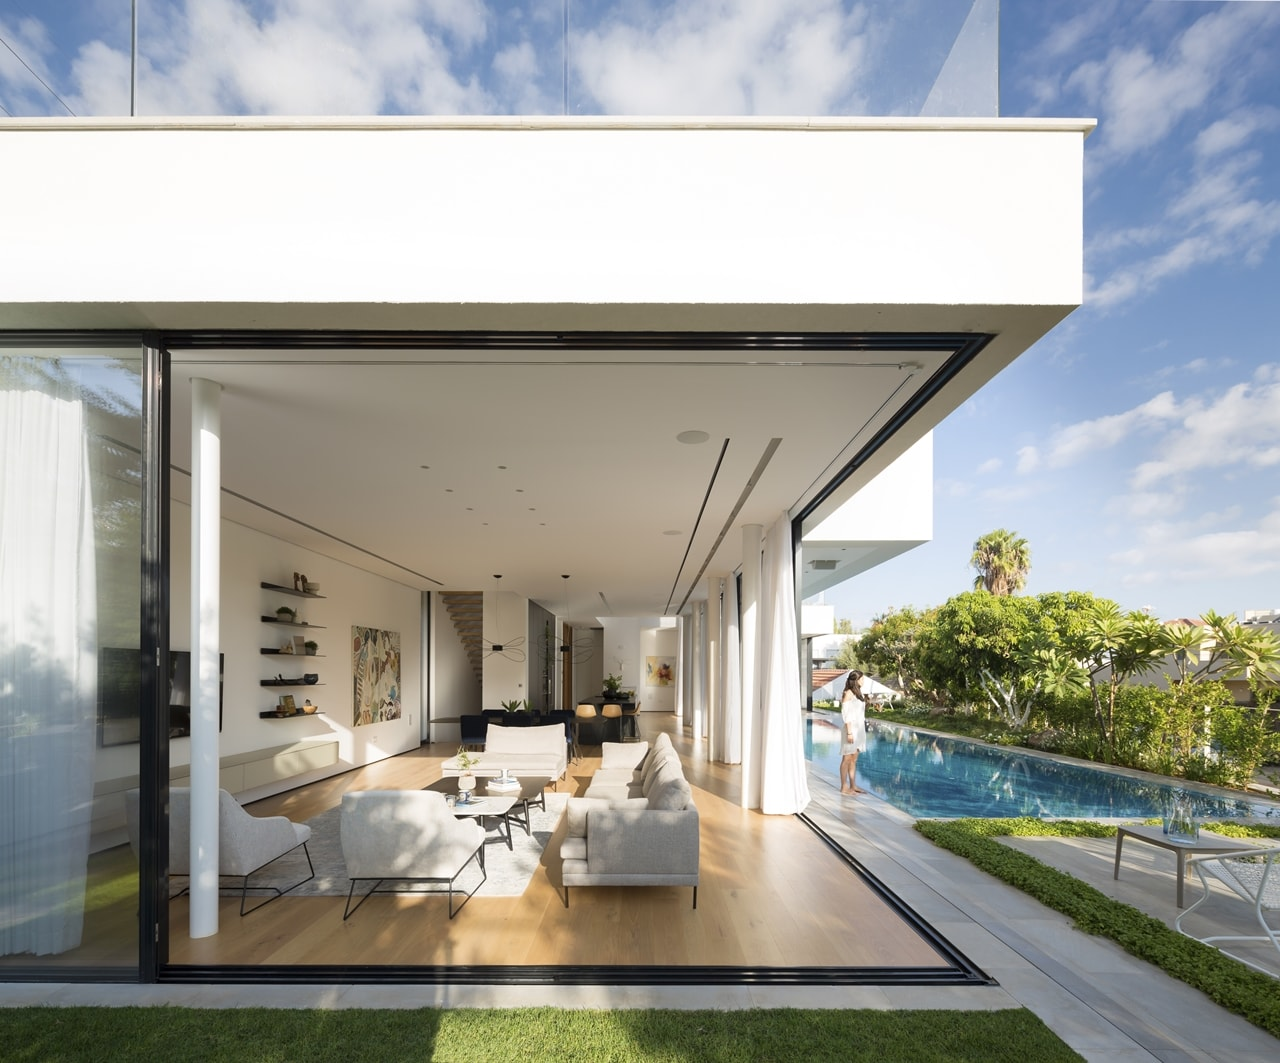 Sliding Glass Wall Used for Remarkable Indoor-Outdoor ...